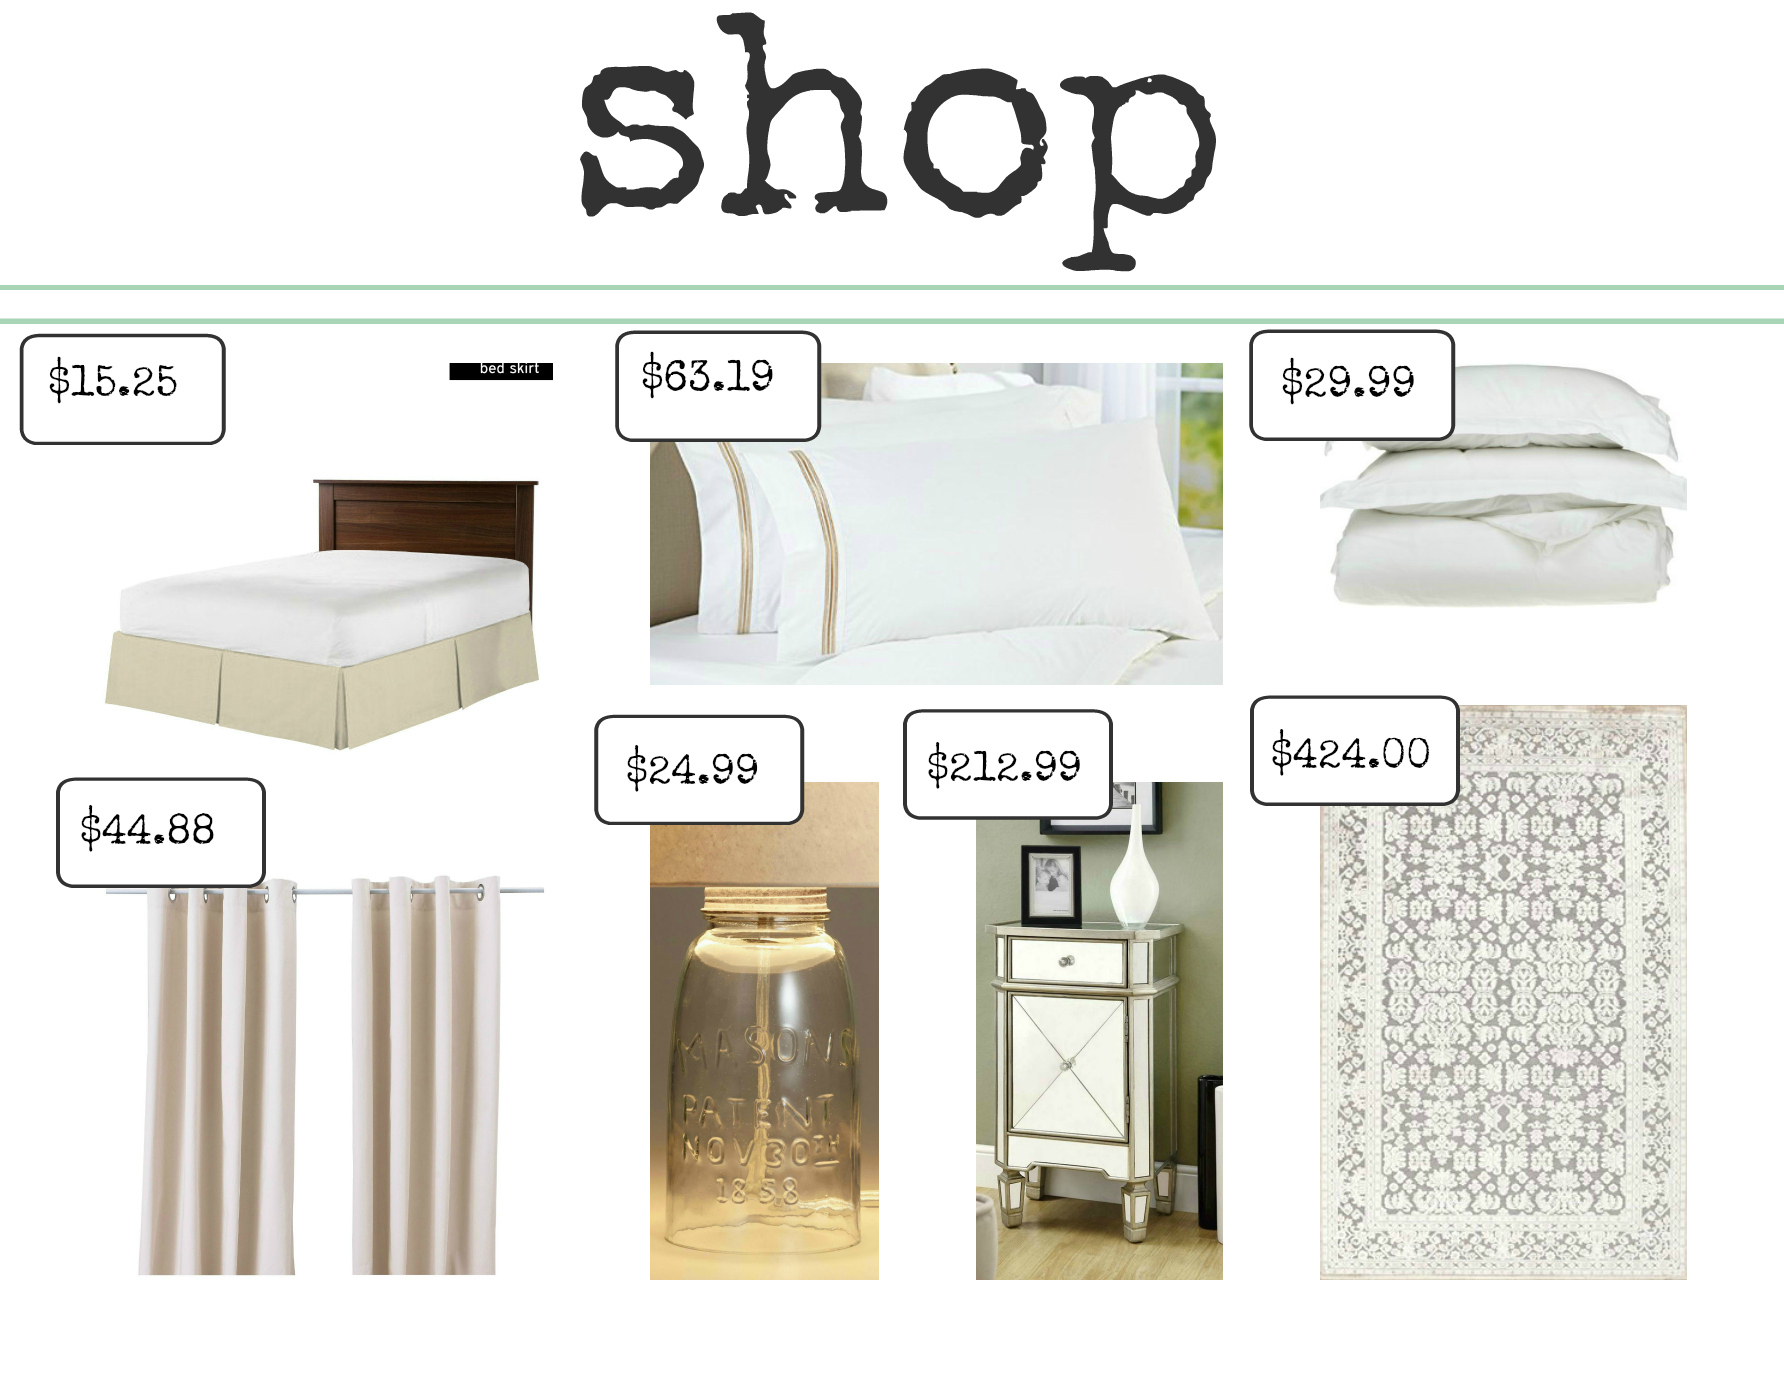 Get The Pottery Barn Look In Your Master Bedroom With These